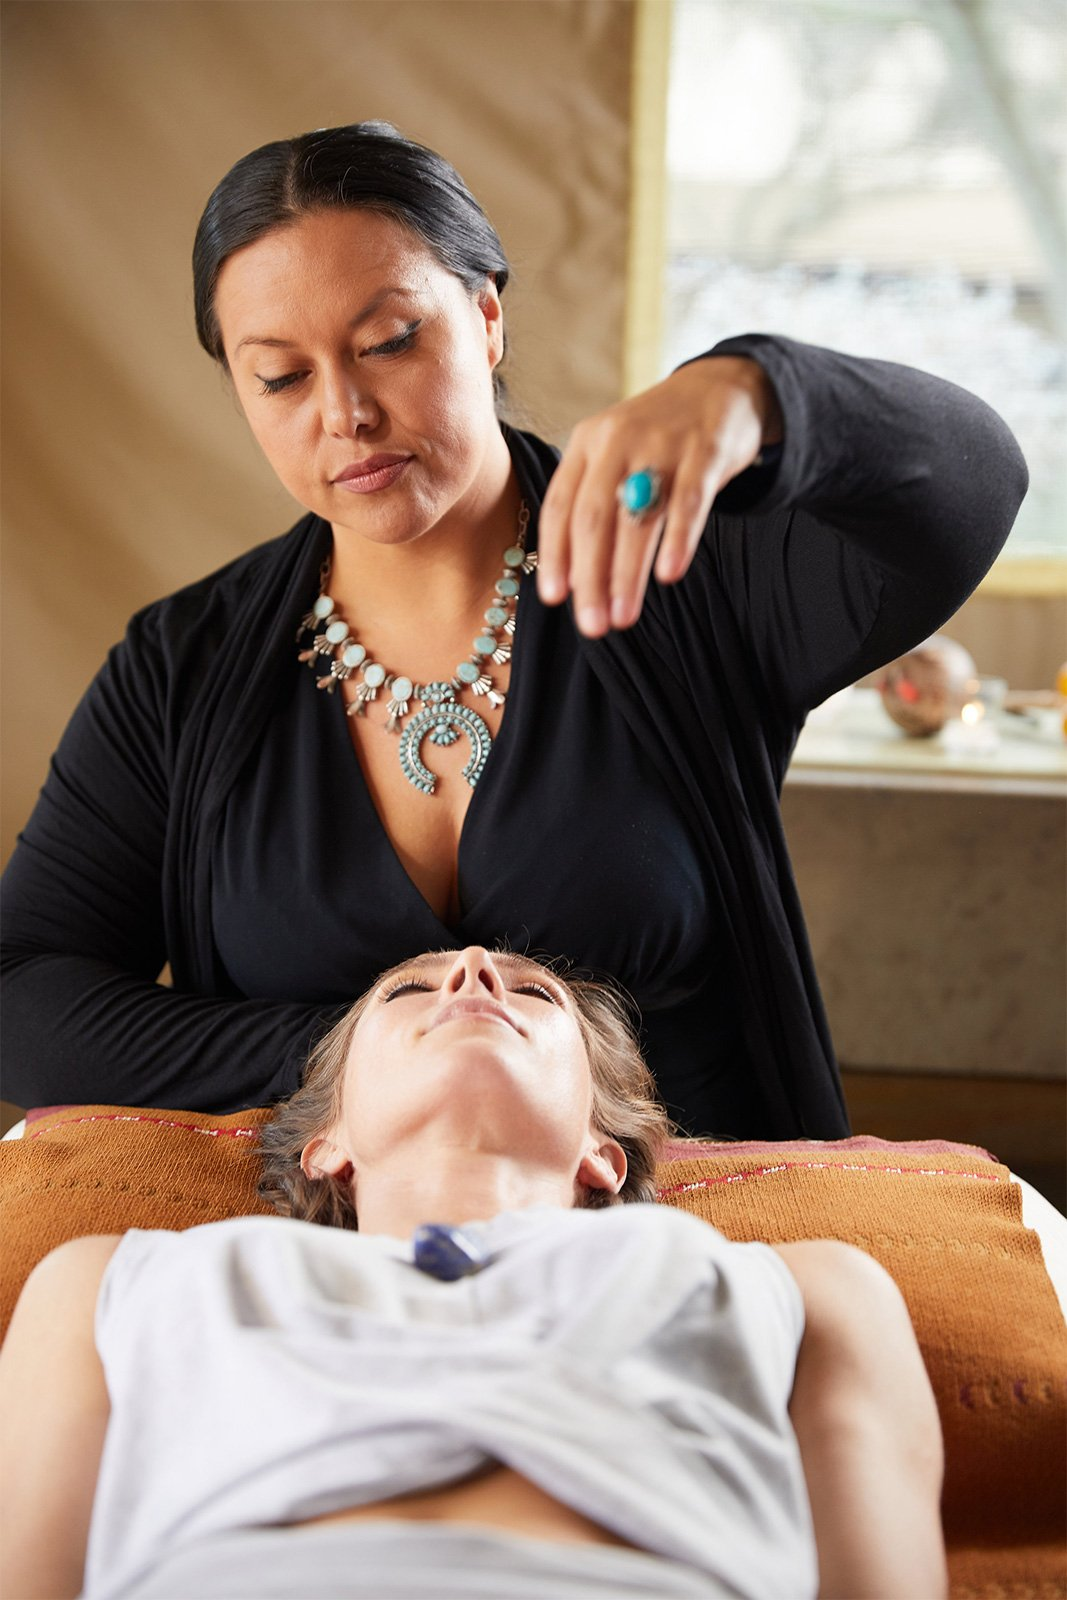 Woman holds hand over another in spa treatment at Miraval.